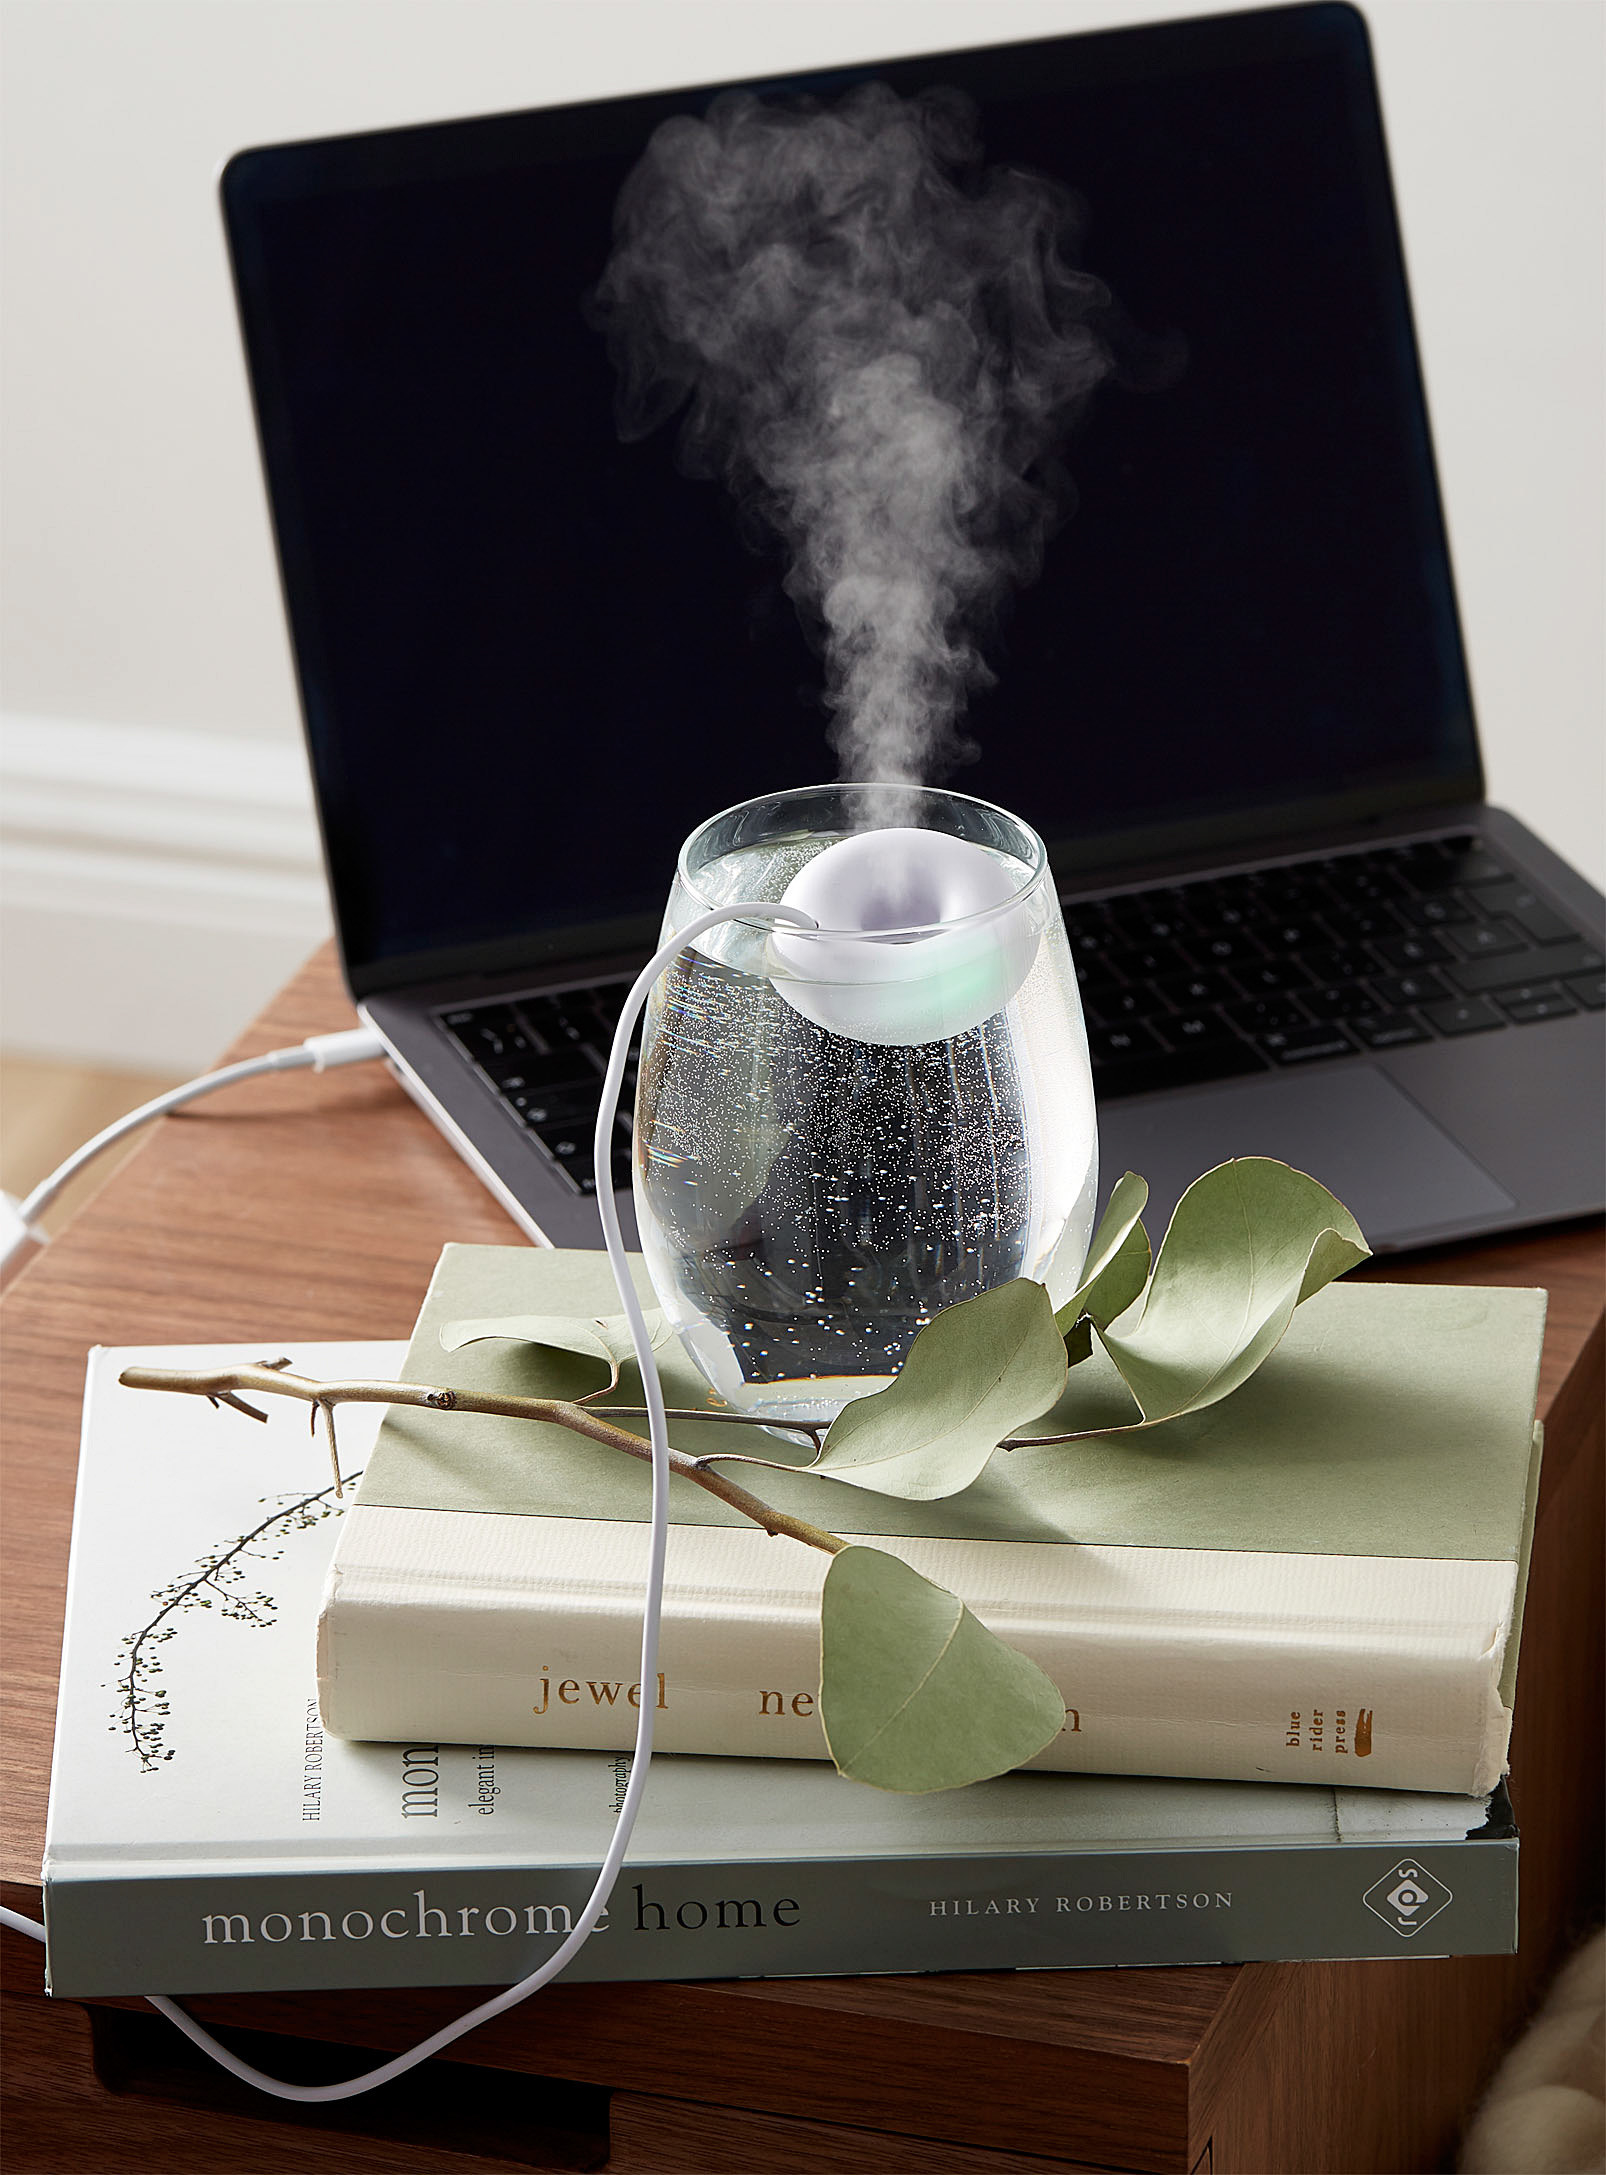 the humidifier in a glass of water on some books plugged into a laptop